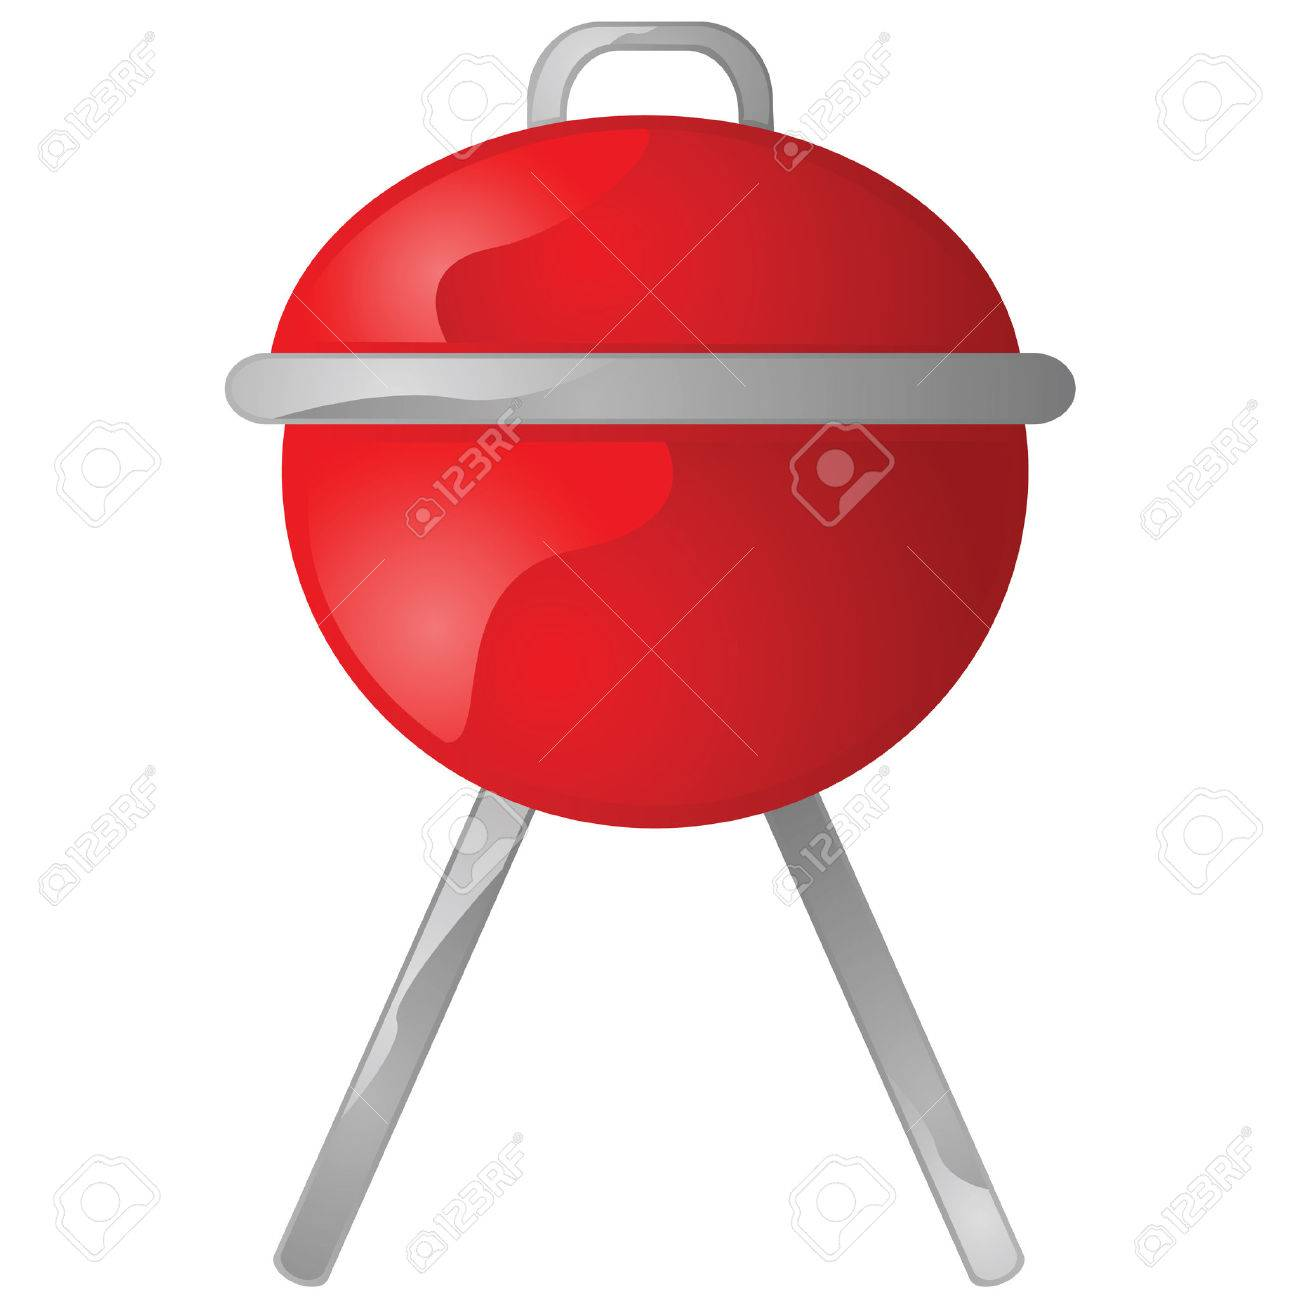 Glossy illustration of a red portable round barbecue grill Stock Vector - 7933512